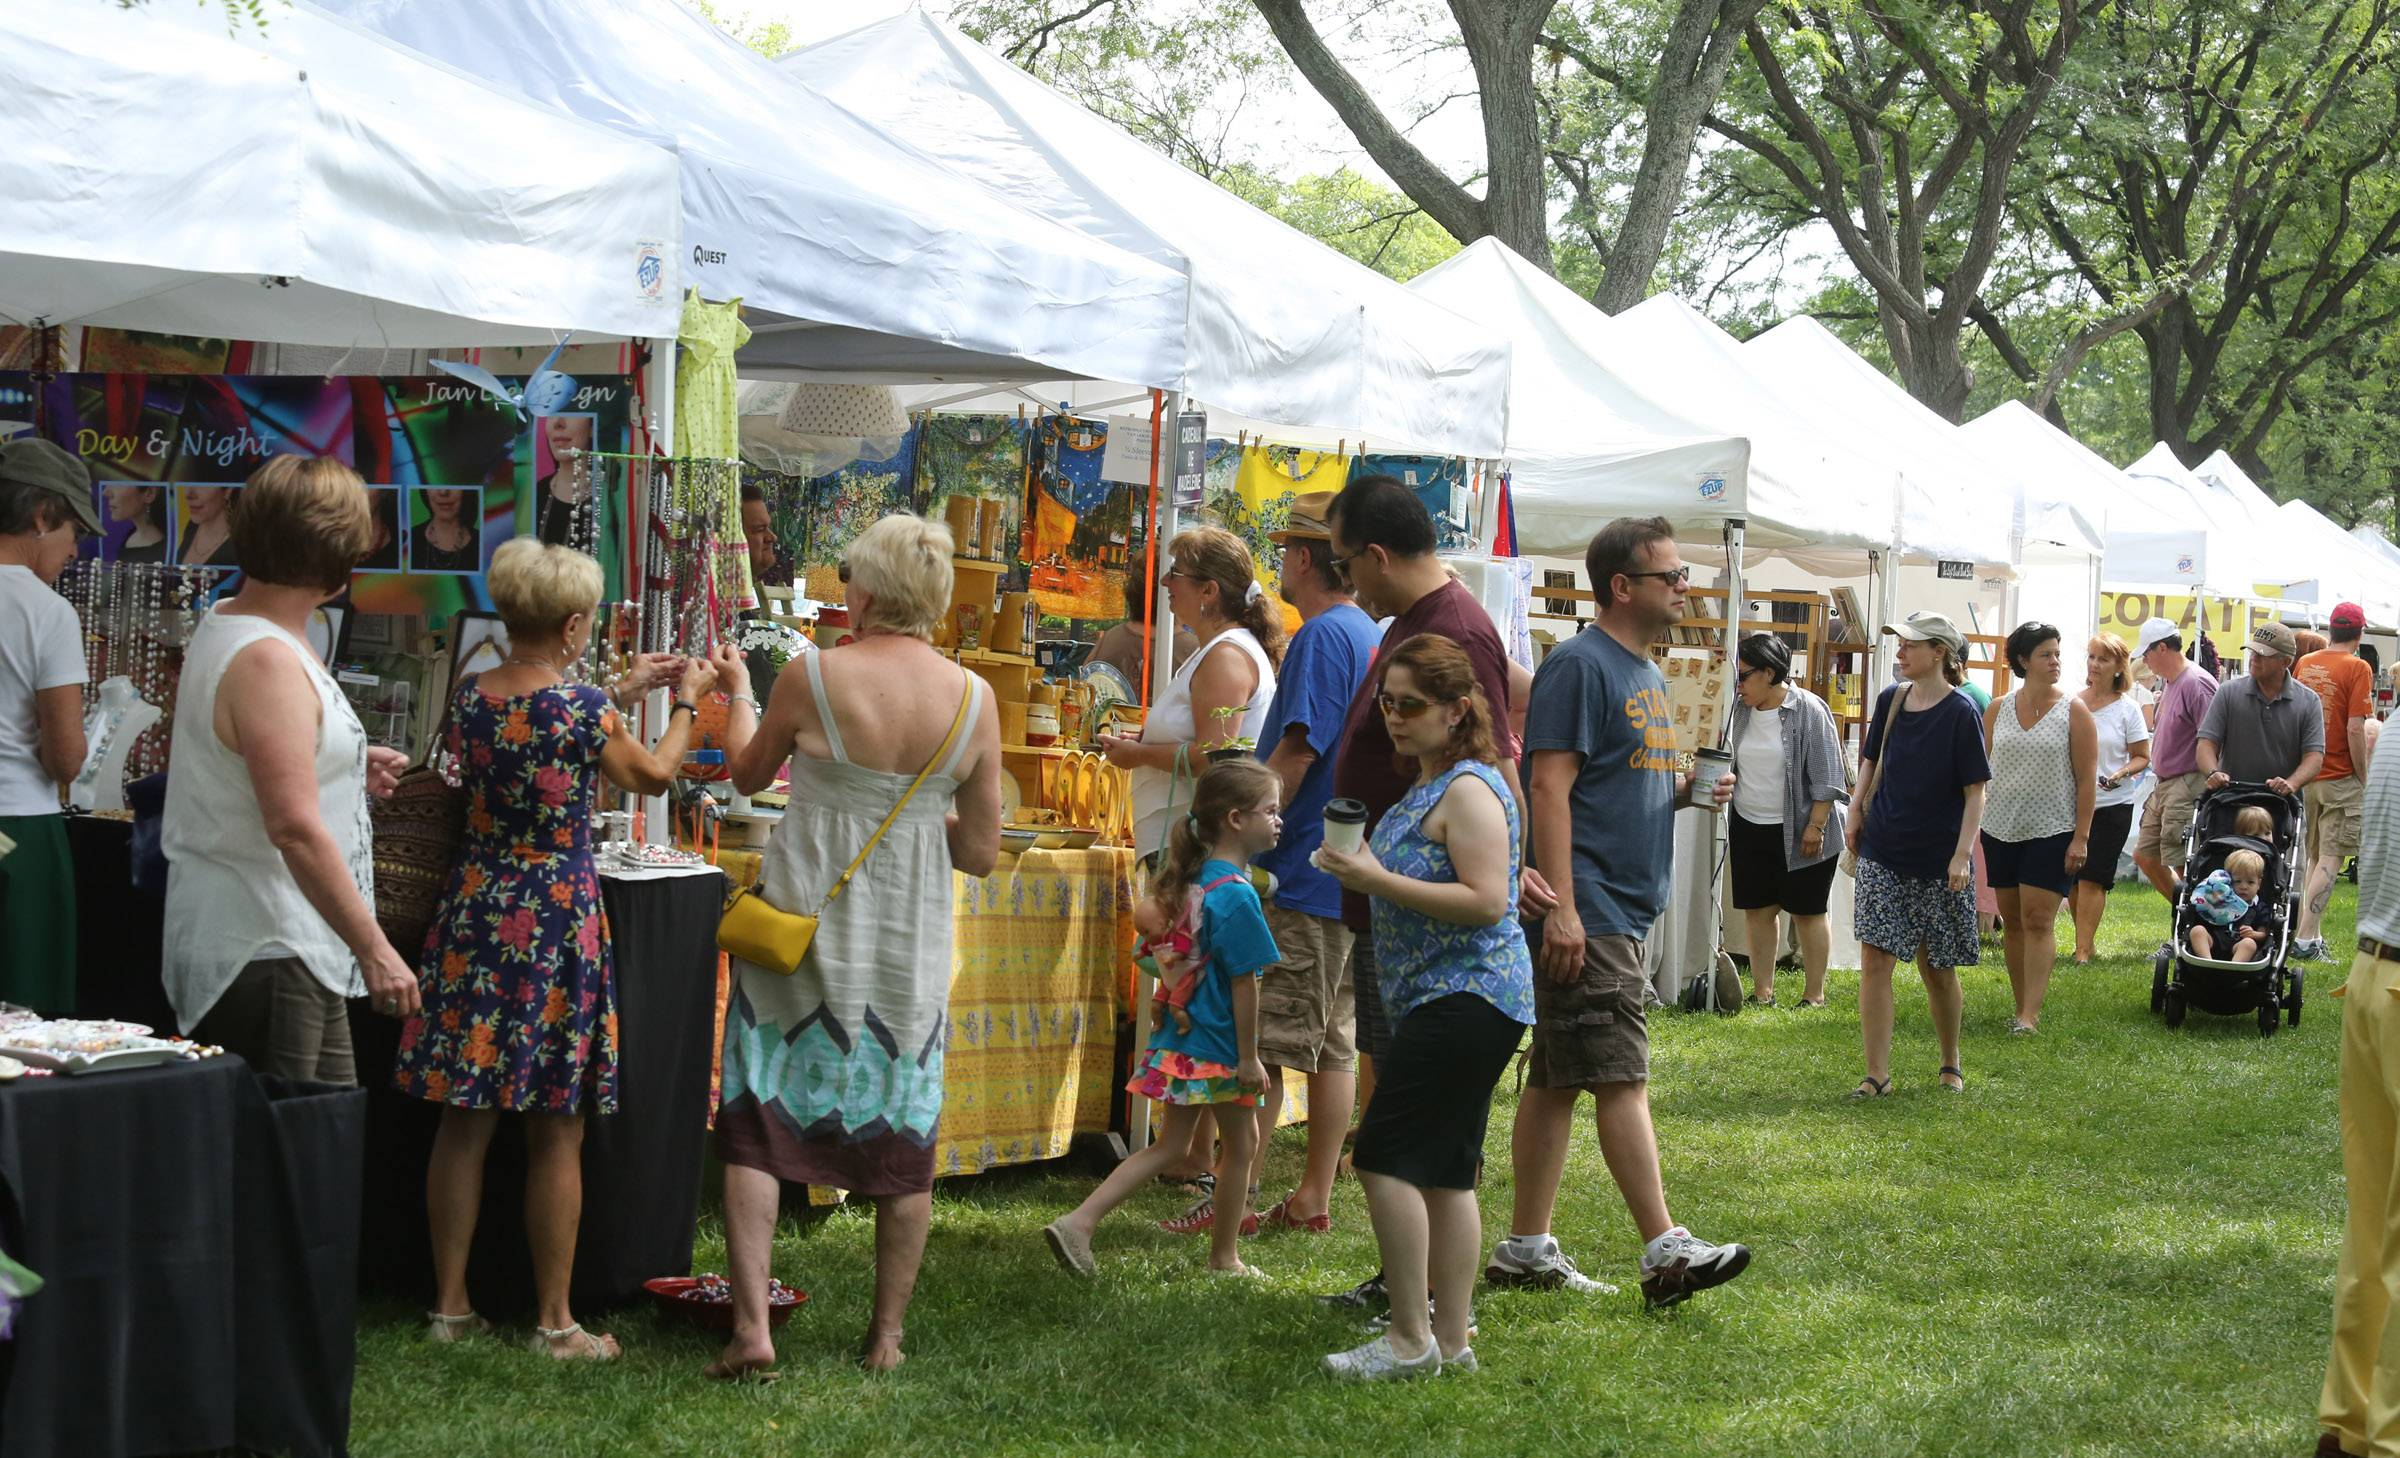 Vendors offered everything from French food to art to music on Sunday during the French Connection Day celebration at Cantigny Park in Wheaton.